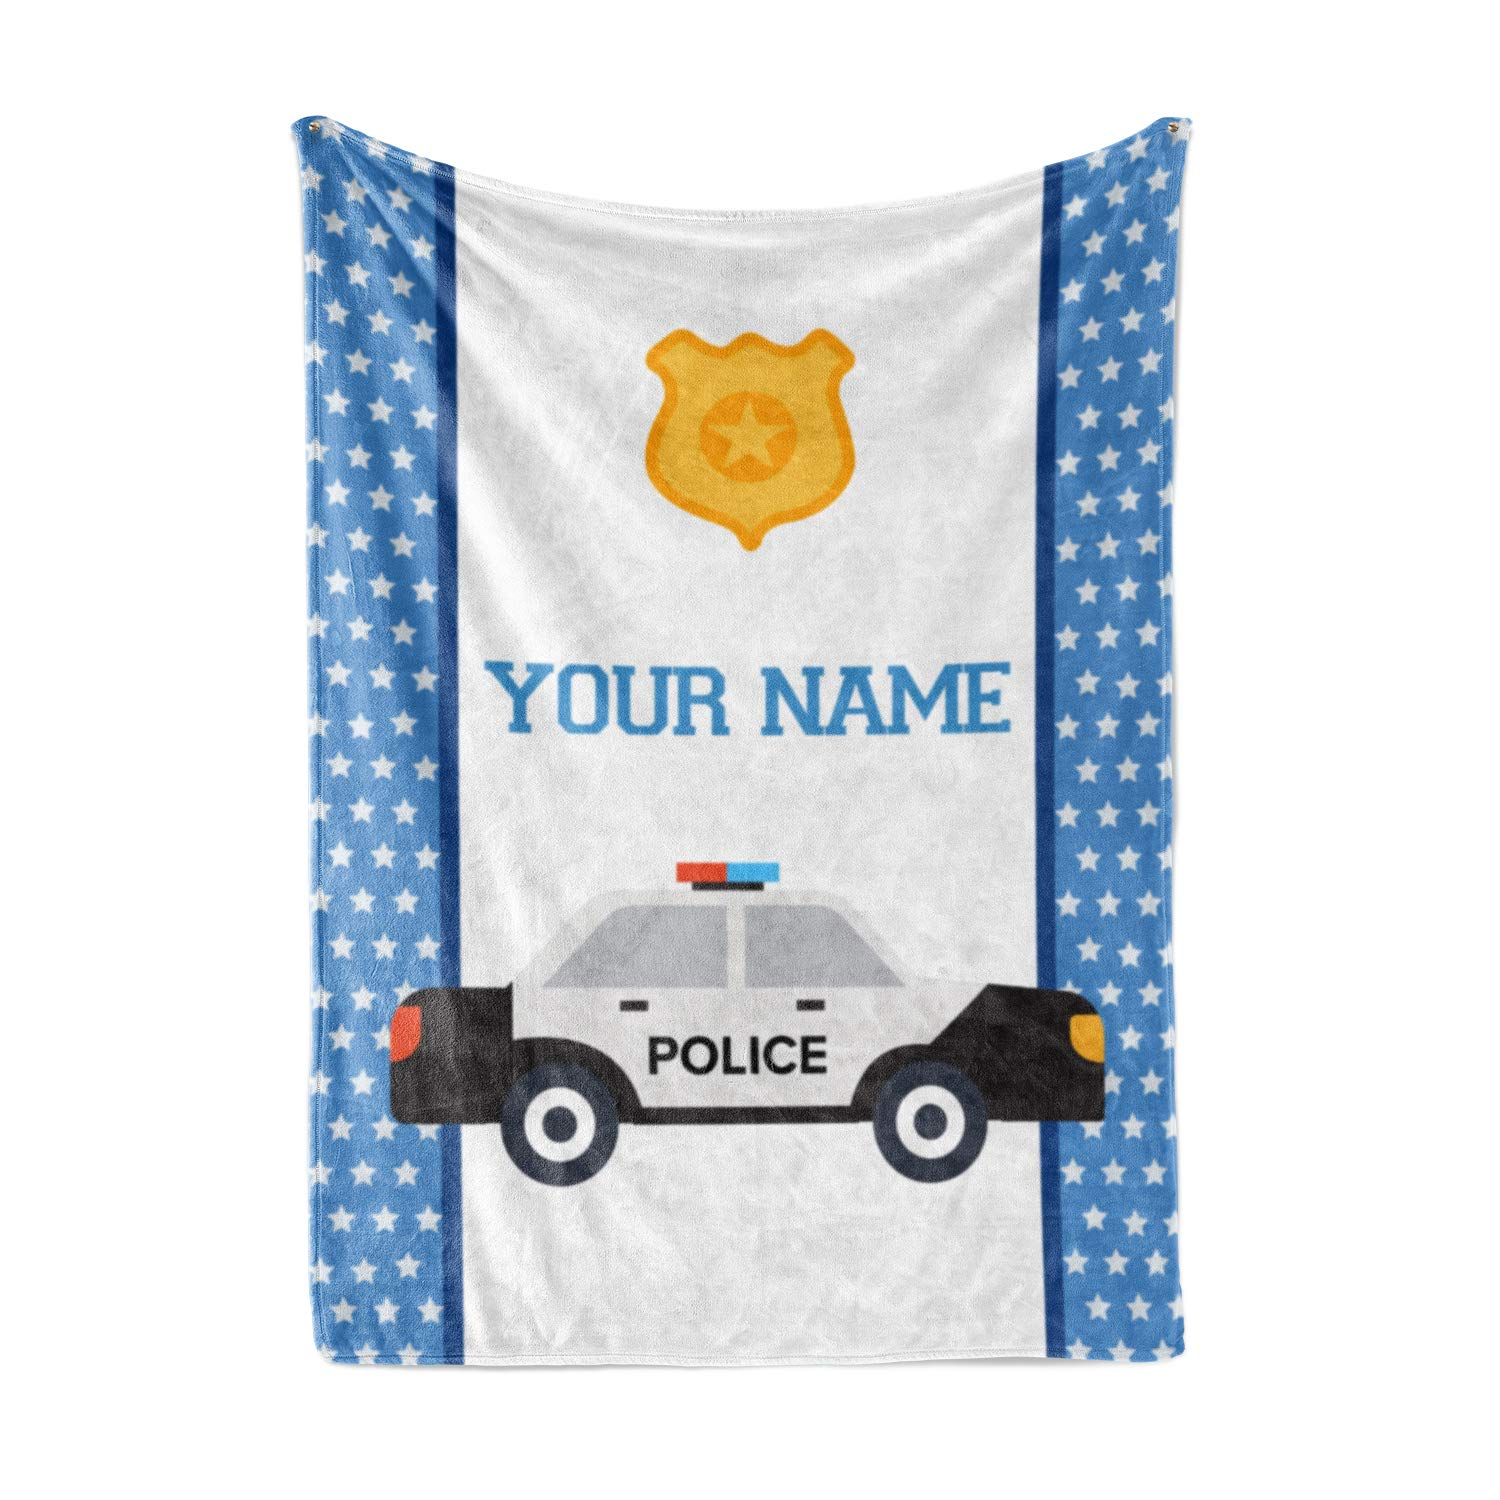 Personalized Custom Police Car Fleece and Sherpa Throw Blanket for Boys, Girls, Kids, Baby - Toddler Police Car Blankets Perfect for Bedtime, Bedding or as Gift (50'' x 60'' - Child) by Personalized Corner